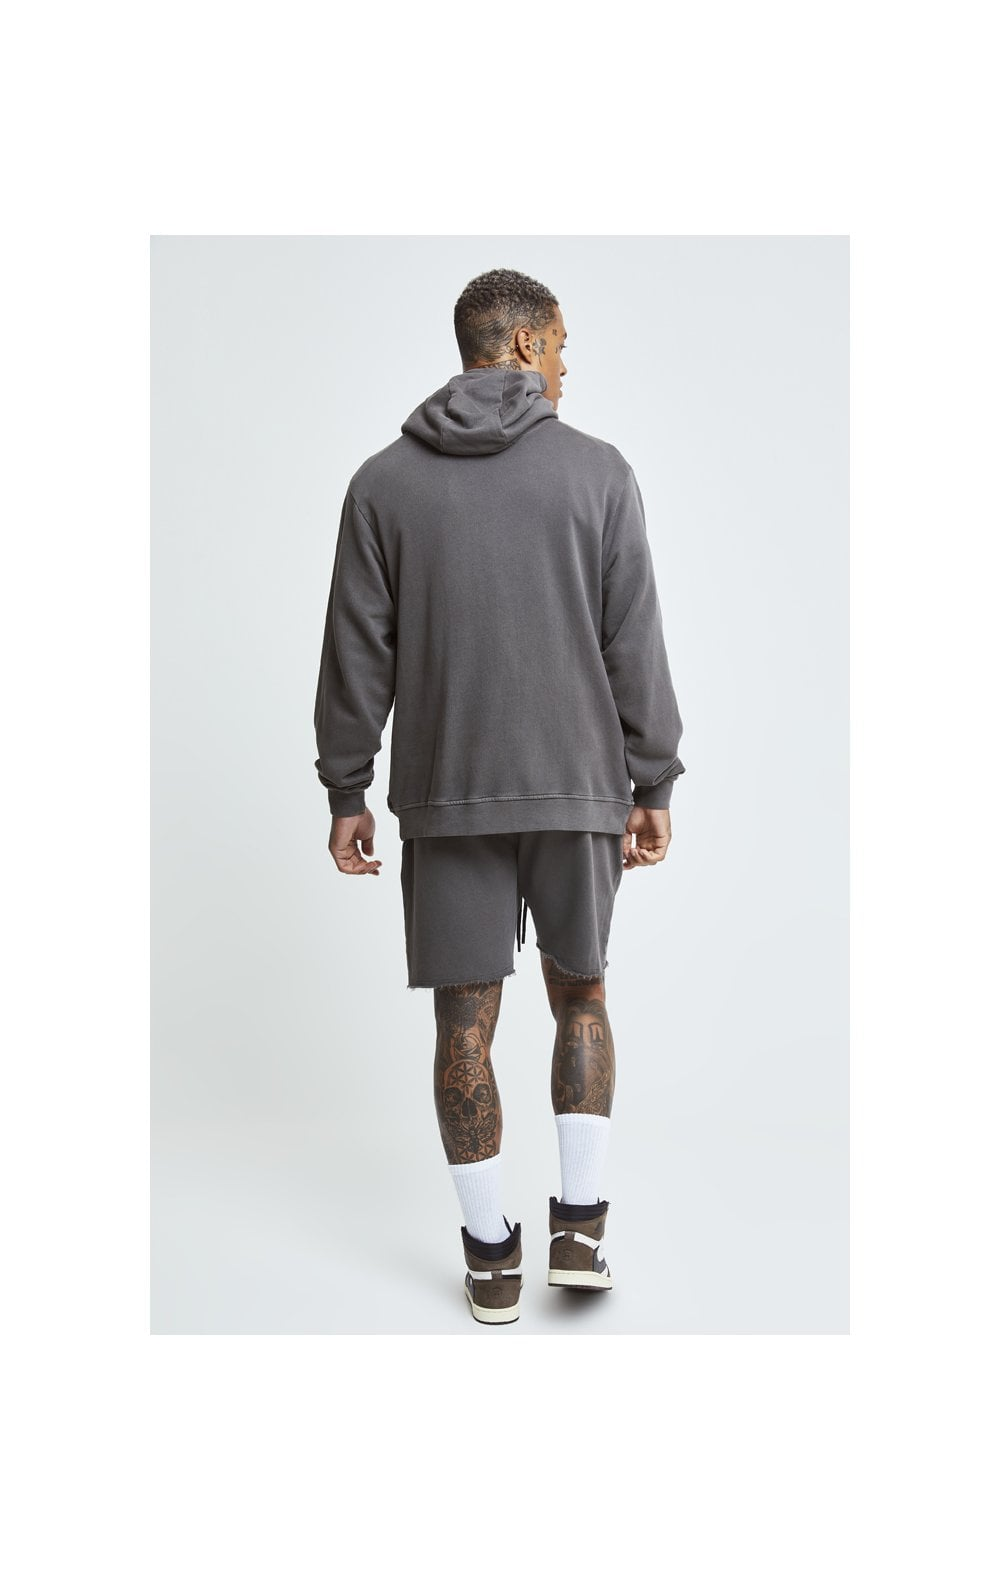 SikSilk X Steve Aoki Relaxed Shorts - Washed Grey (1)